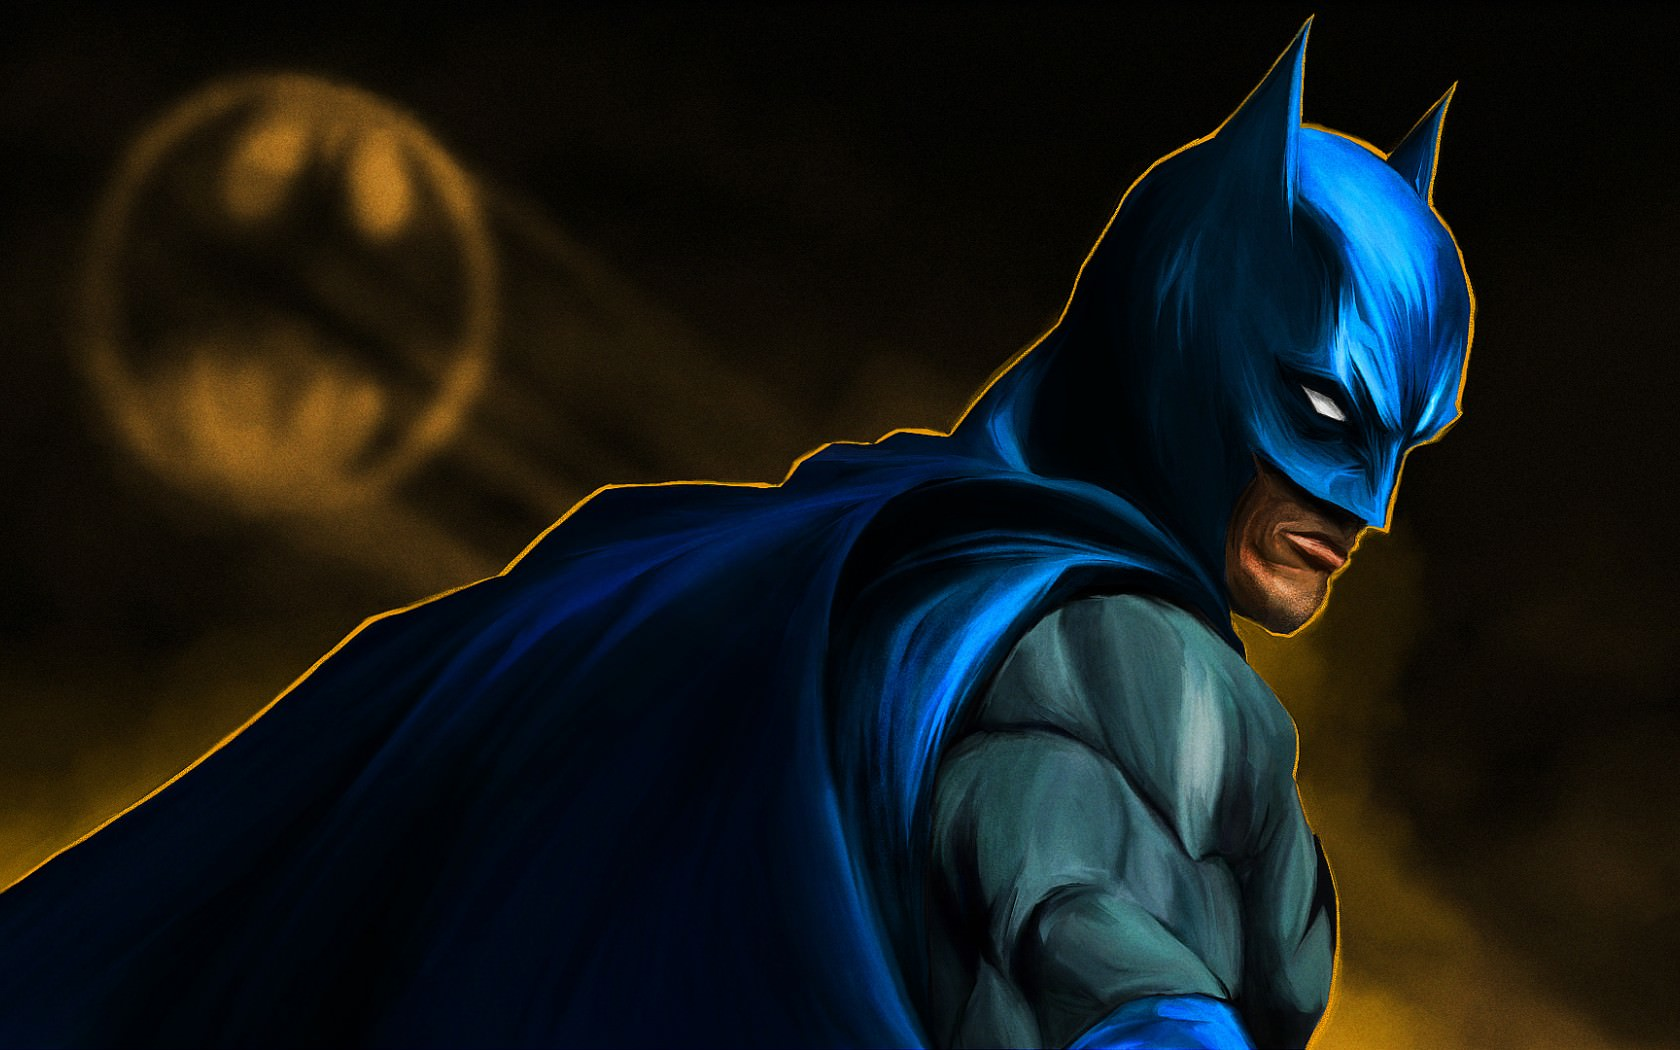 Animated Batman Hd Wallpaper